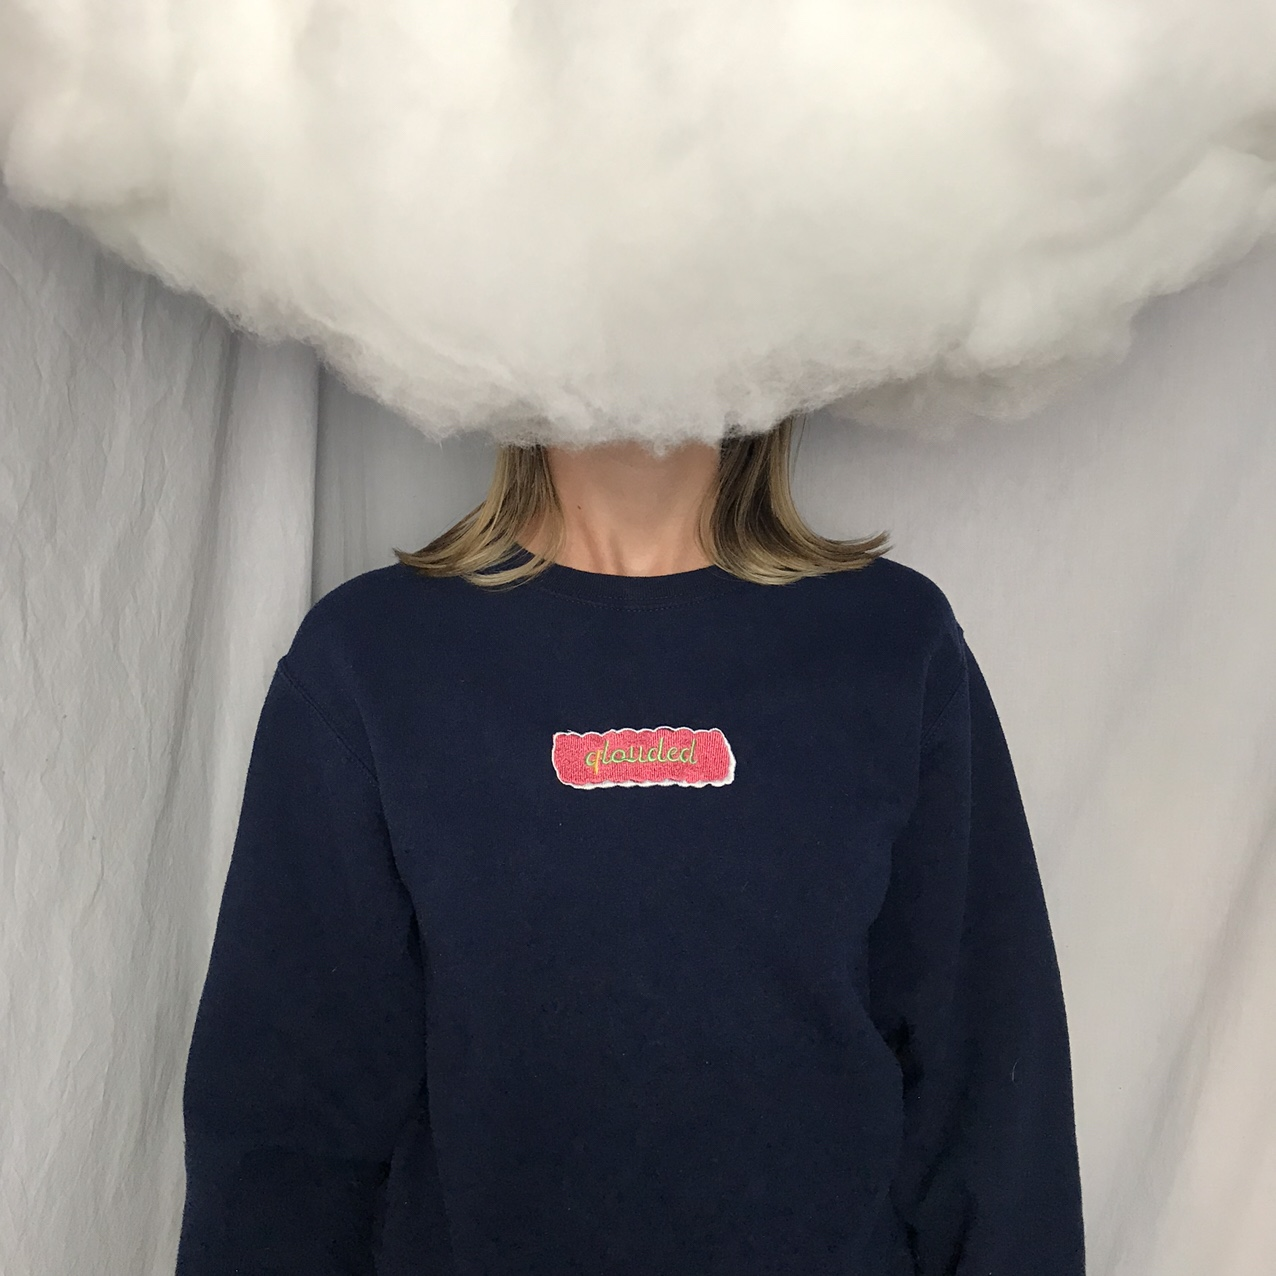 Product Image 1 - Navy crewneck sweater. Pink embroidery